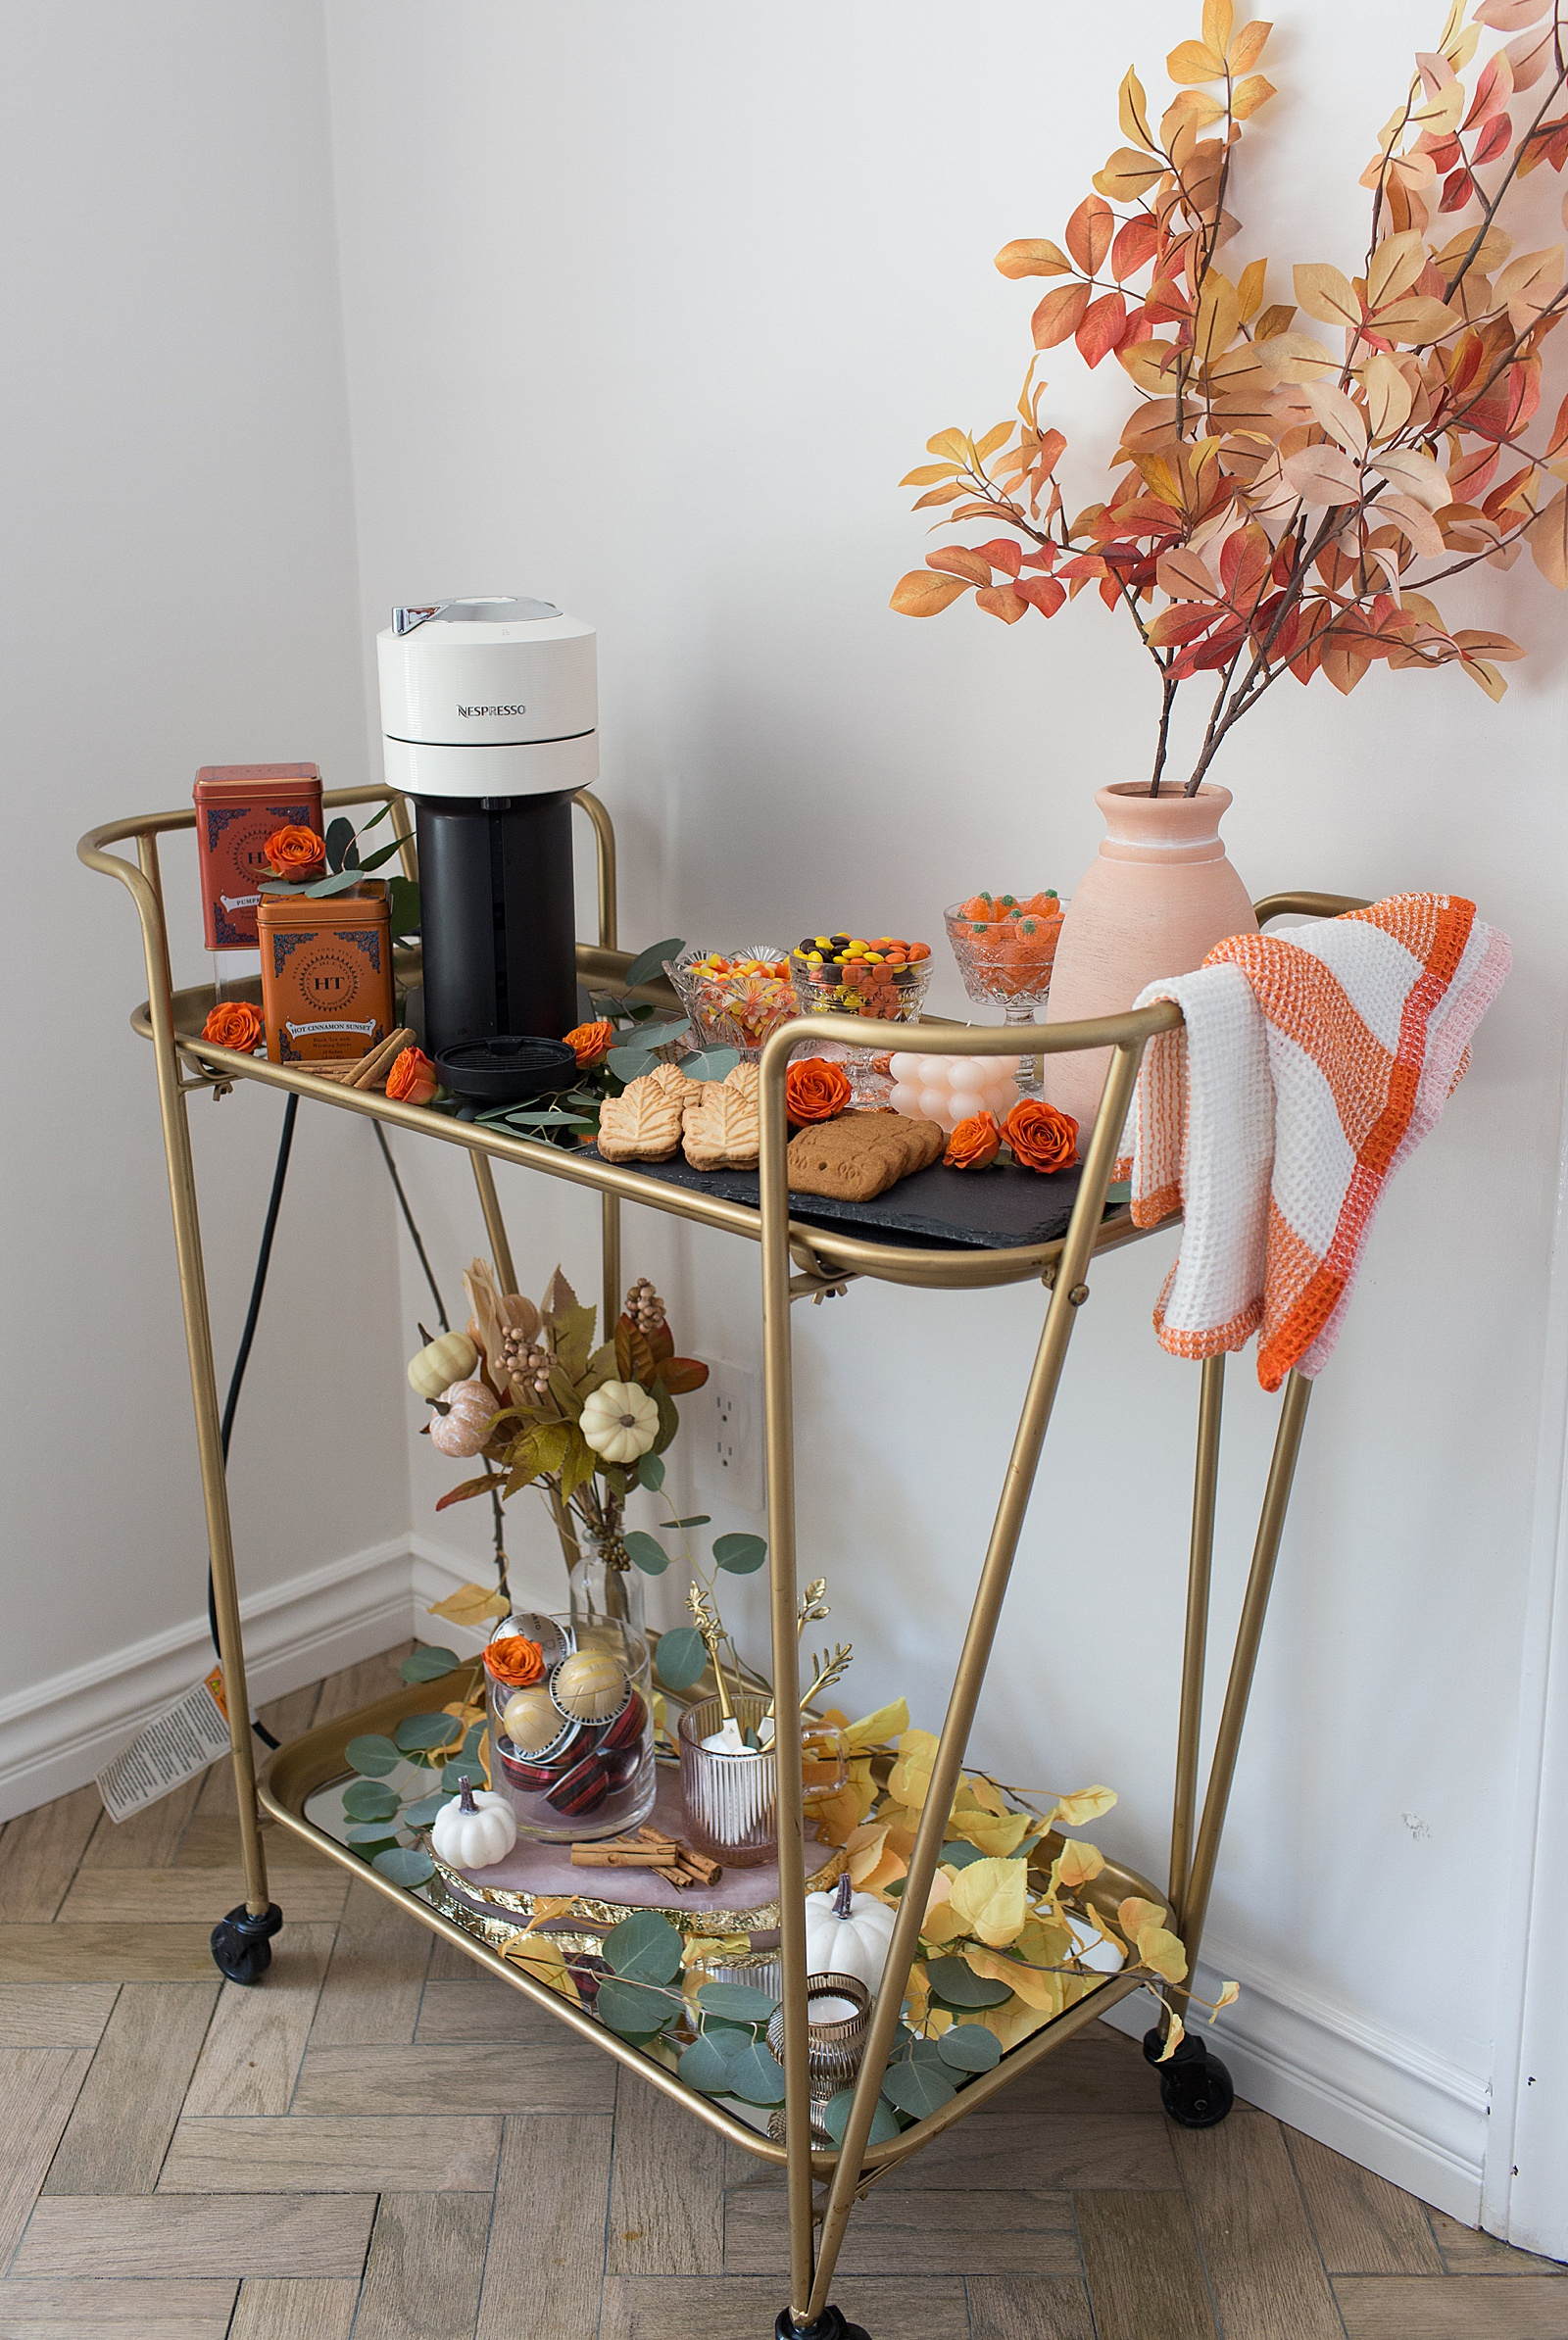 How to Style a Fall Coffee Cart